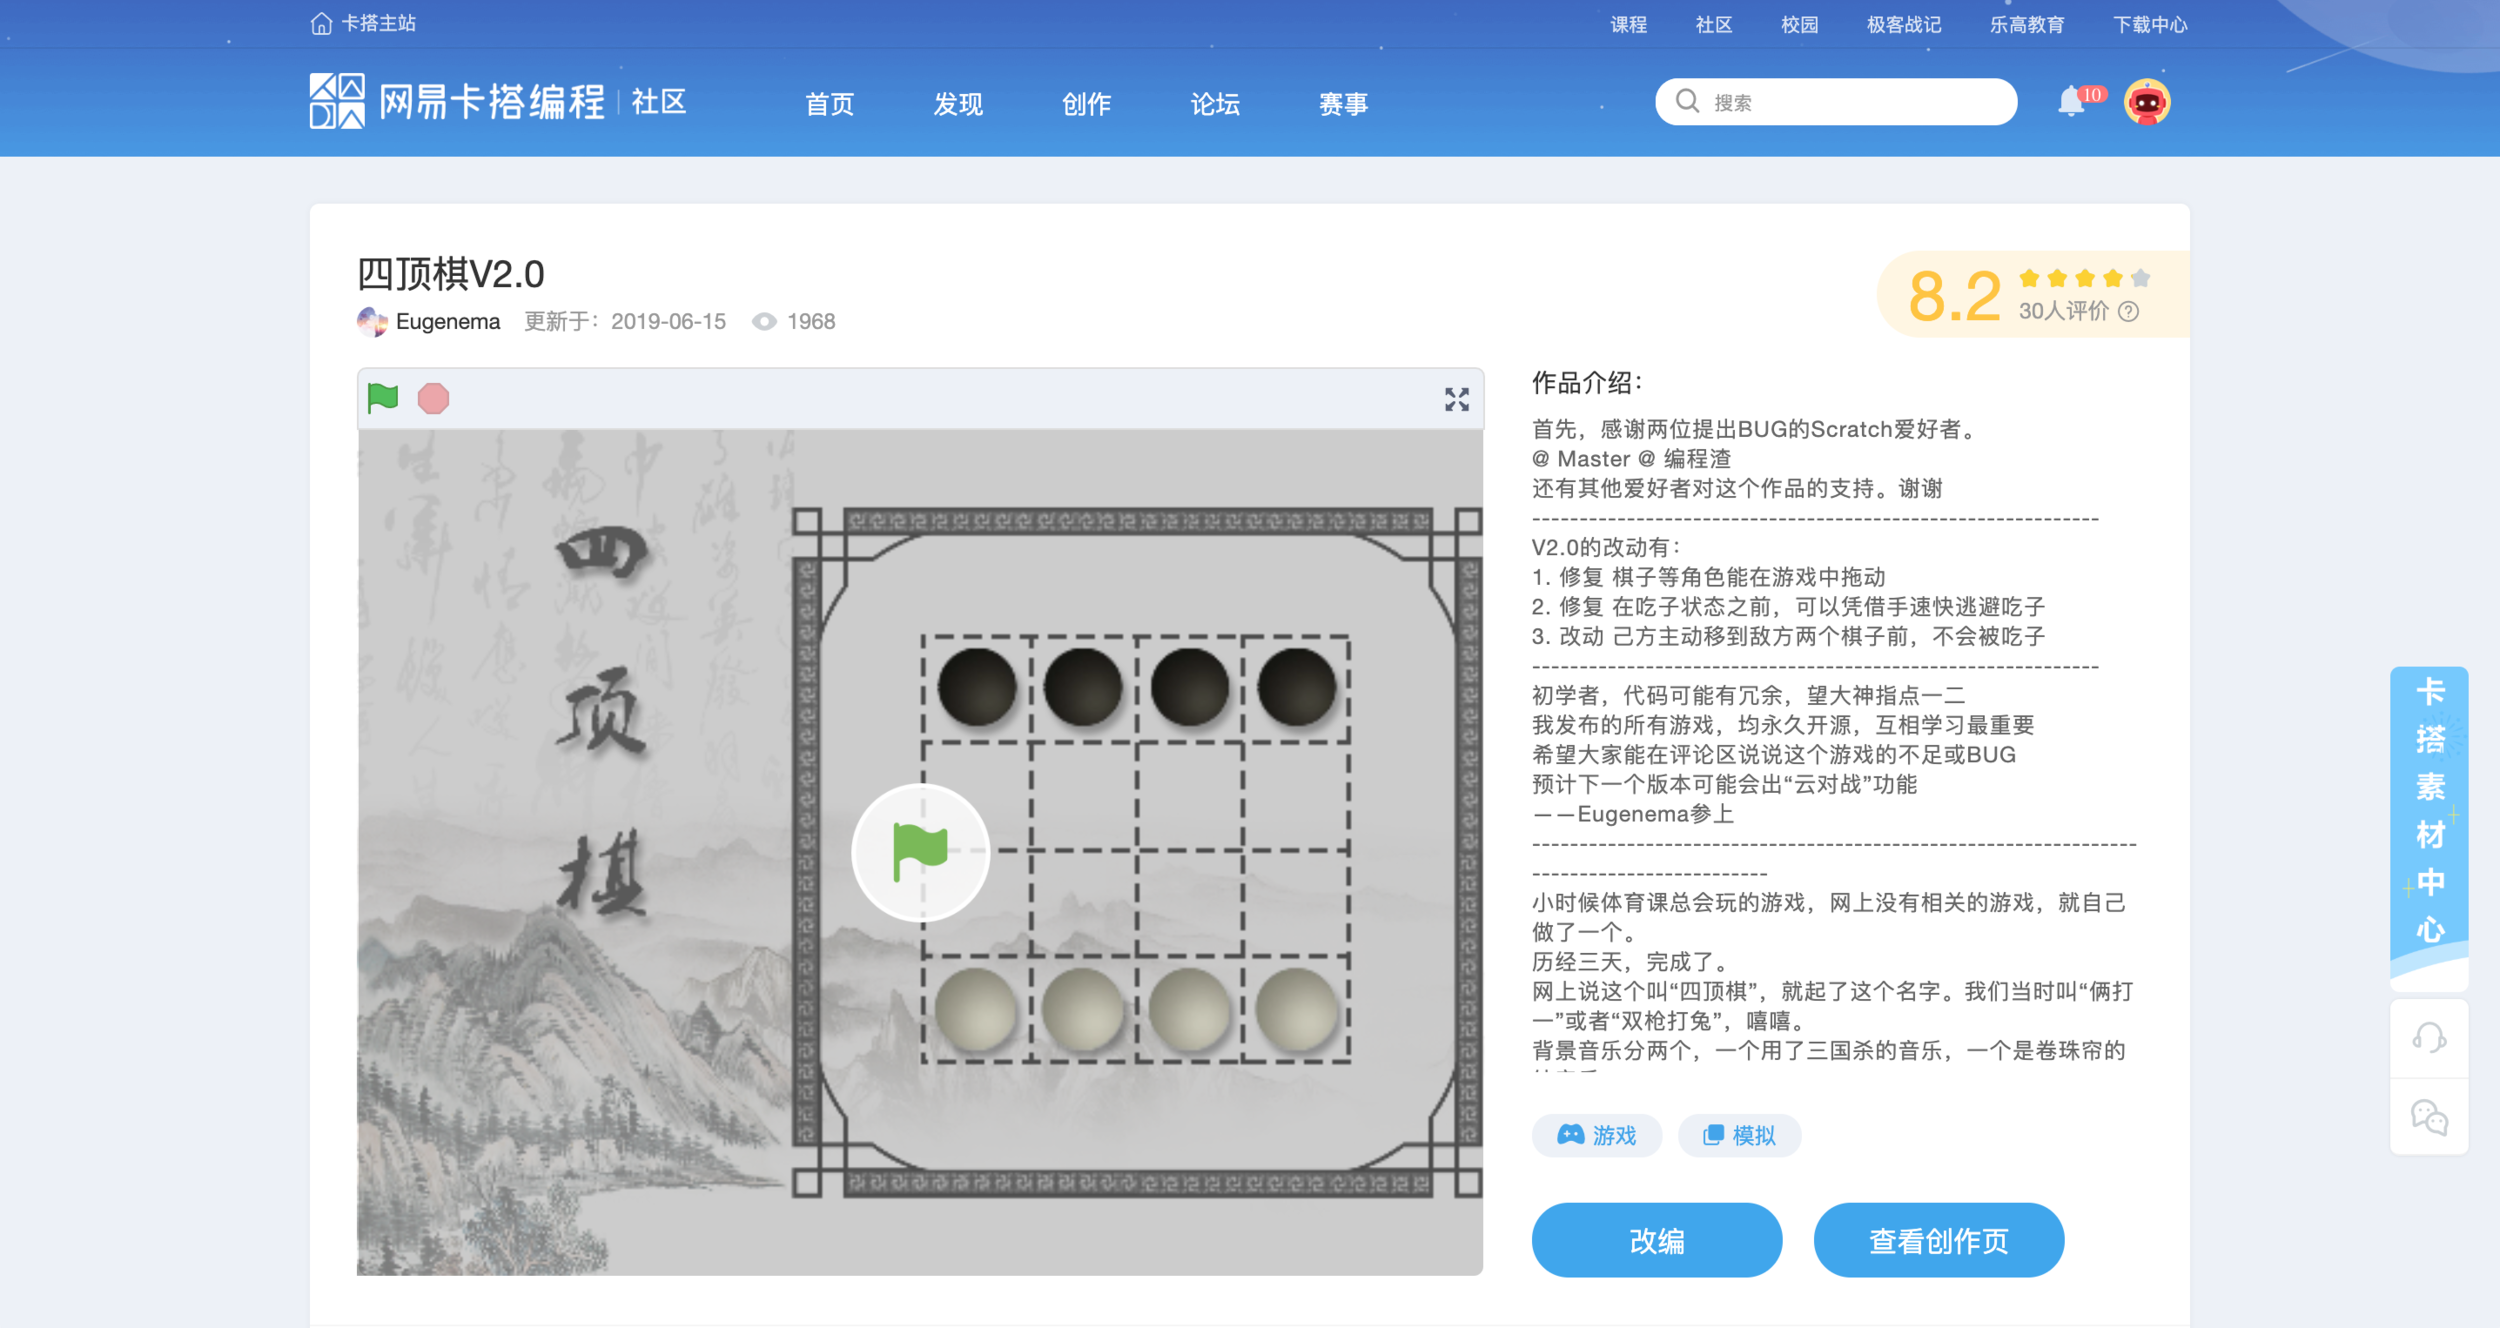 - Figure 2: The project's main page. The publish page used to look similar to the project's main page. The different copy on the buttons tell users which page they are on